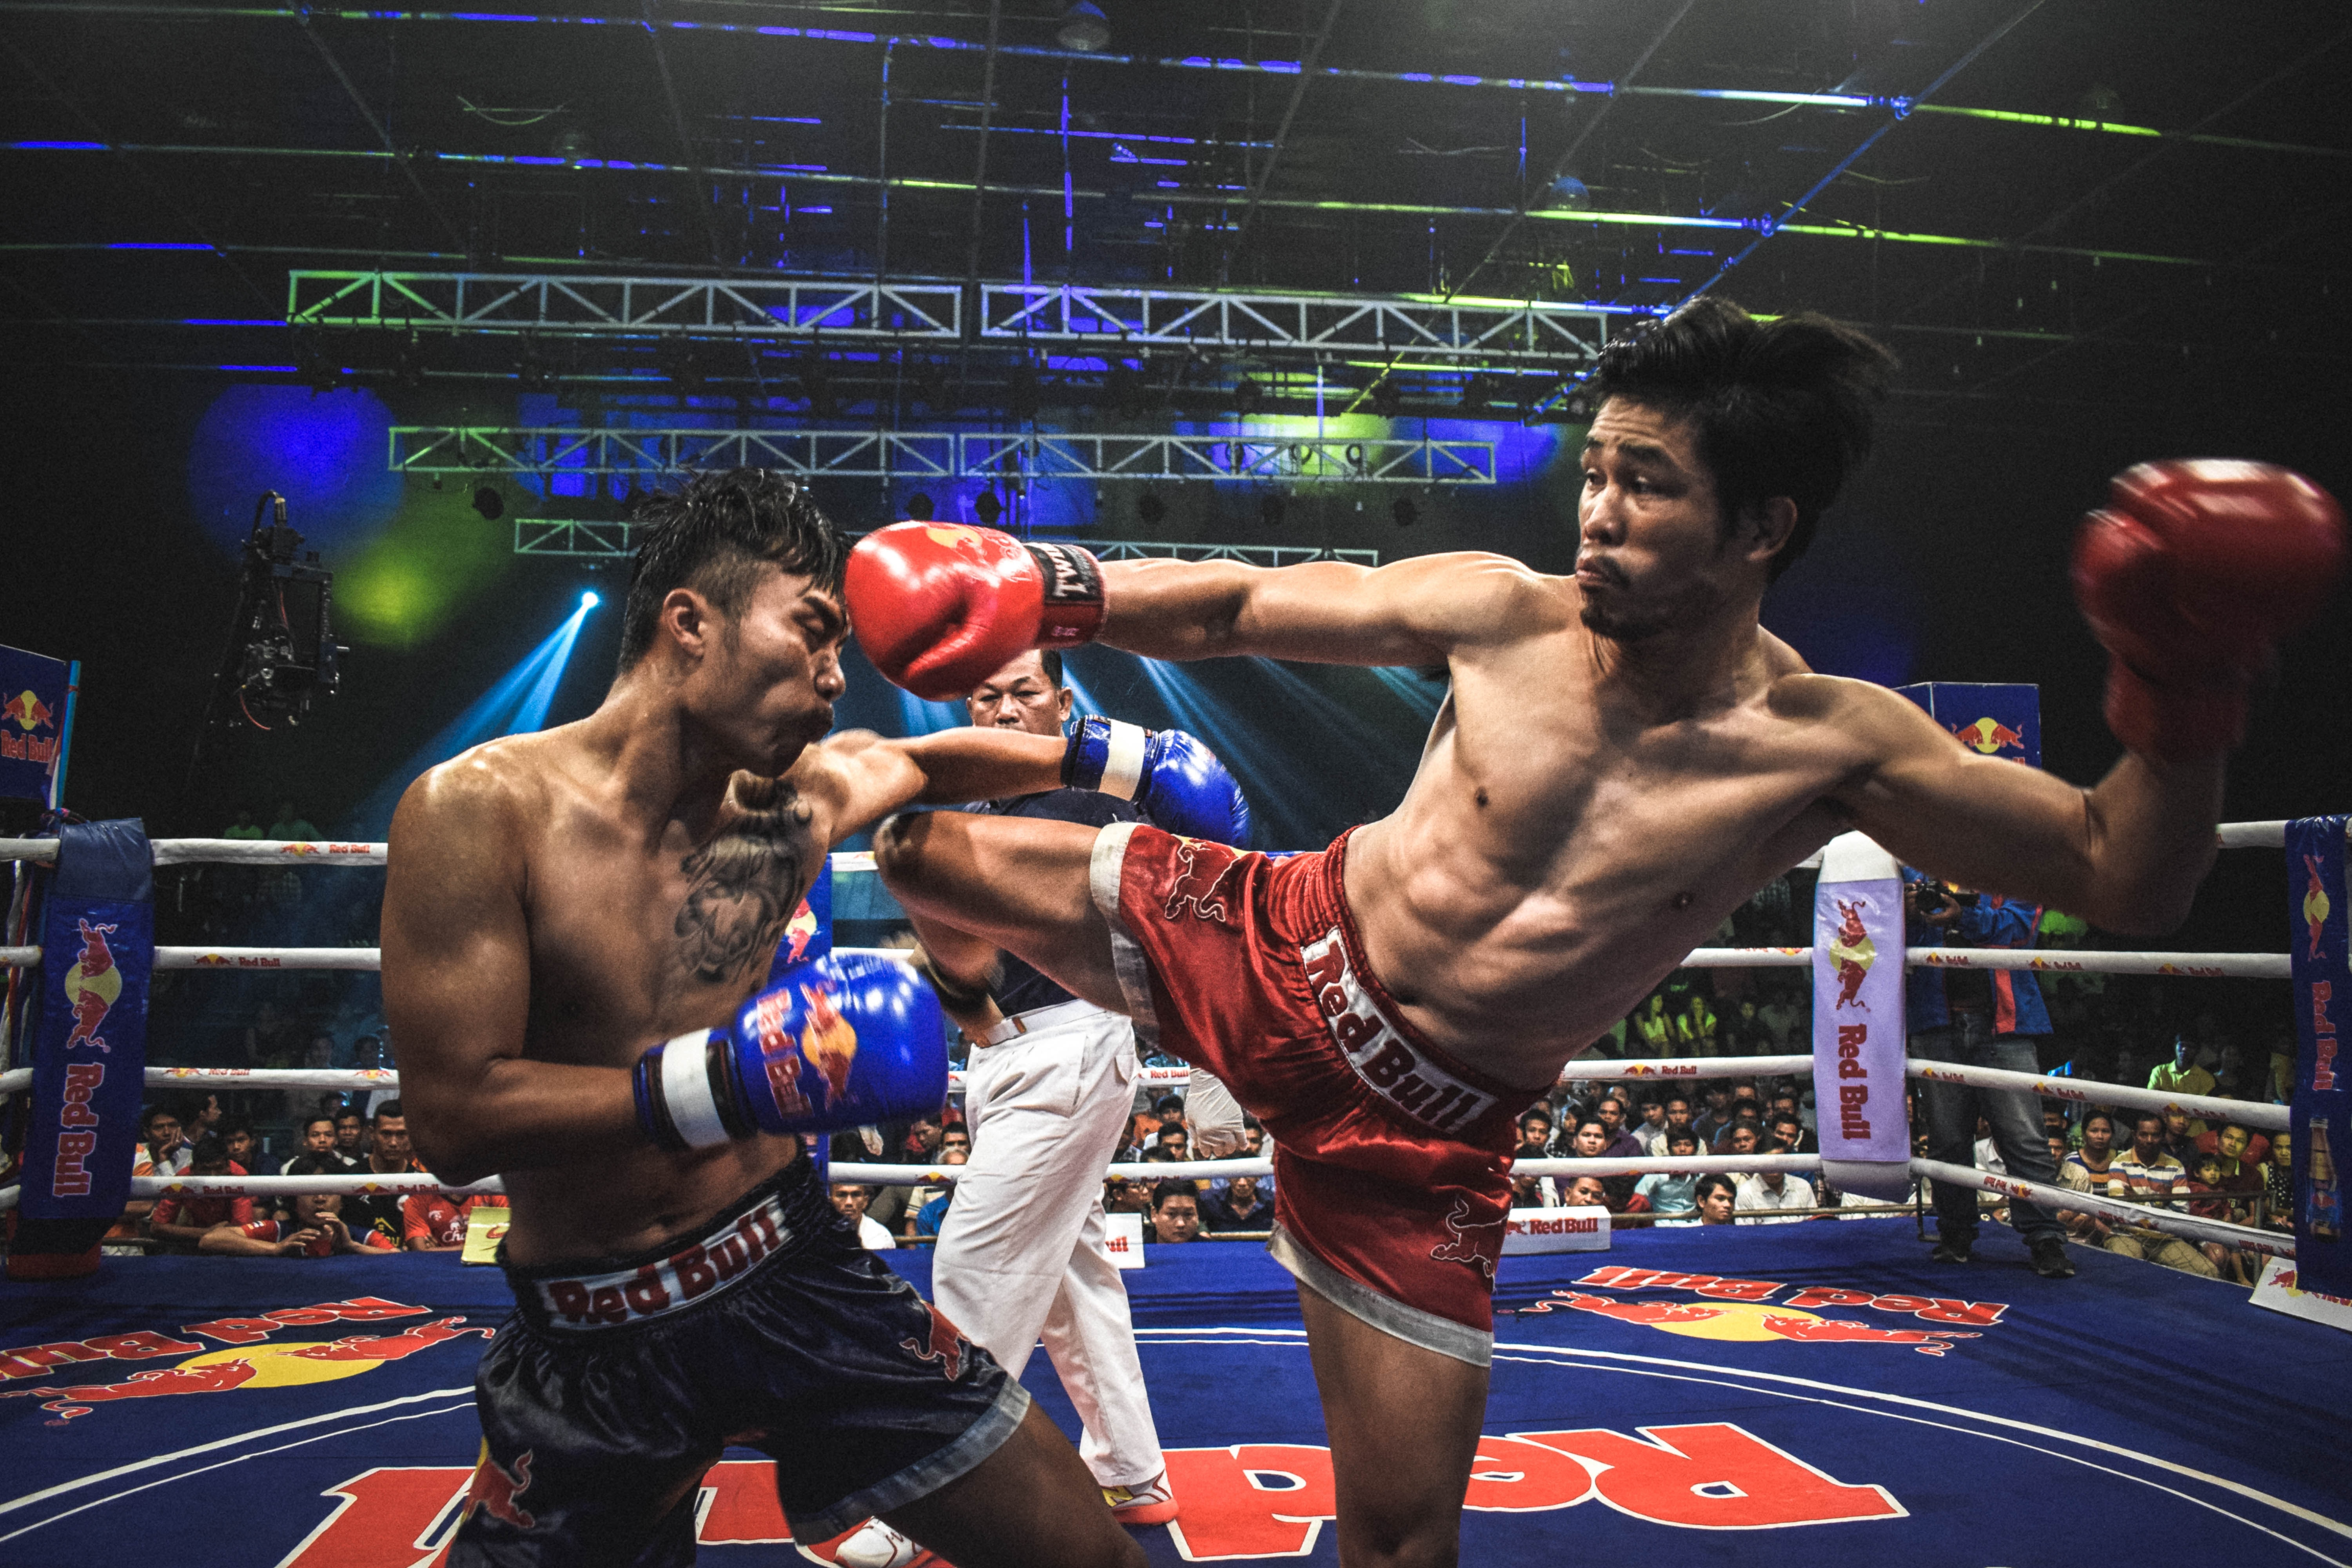 5 Things You Didn't Know About Muay Thai That Will Totally Blow Your Mind